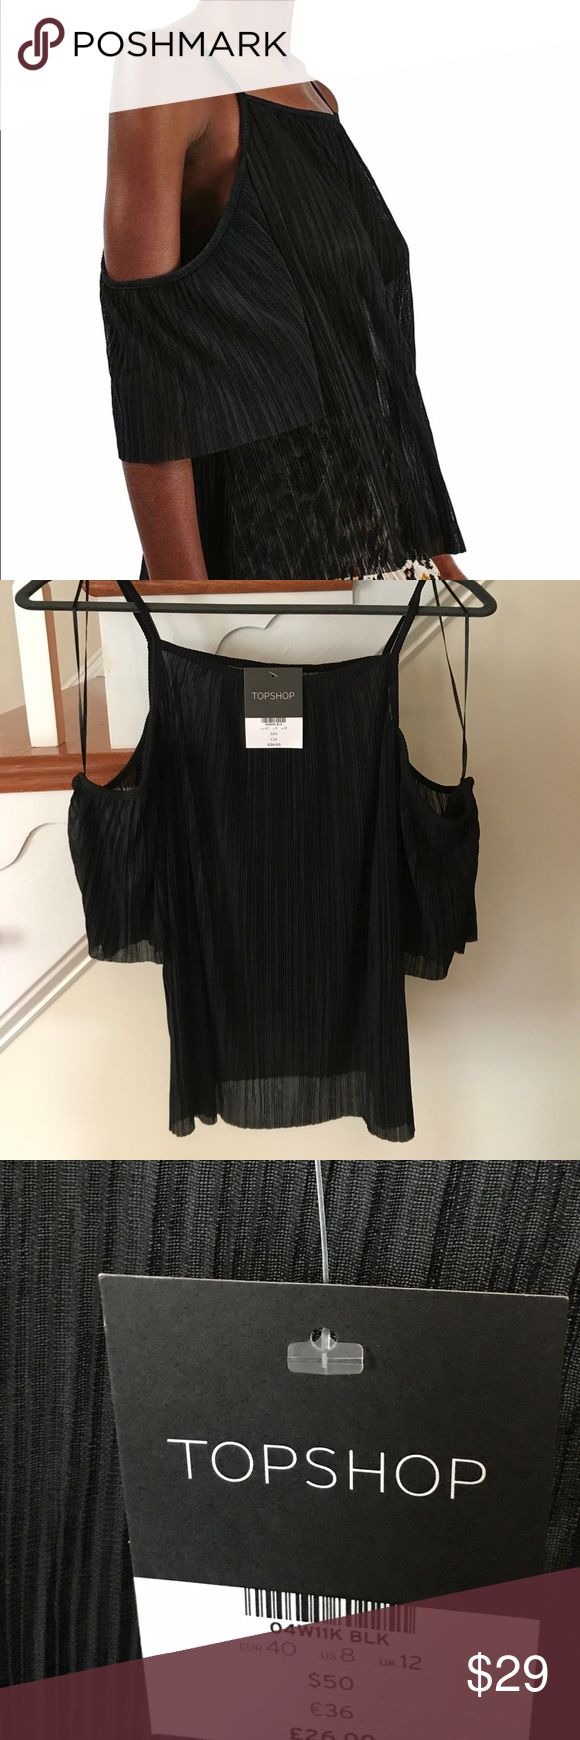 Pleated Sheer Topshop Top NWT Pleated Black Topshop Top.  Top is a Sheer Pleated Material with Spaghetti Strap and Cold Shoulder Design. Topshop Tops